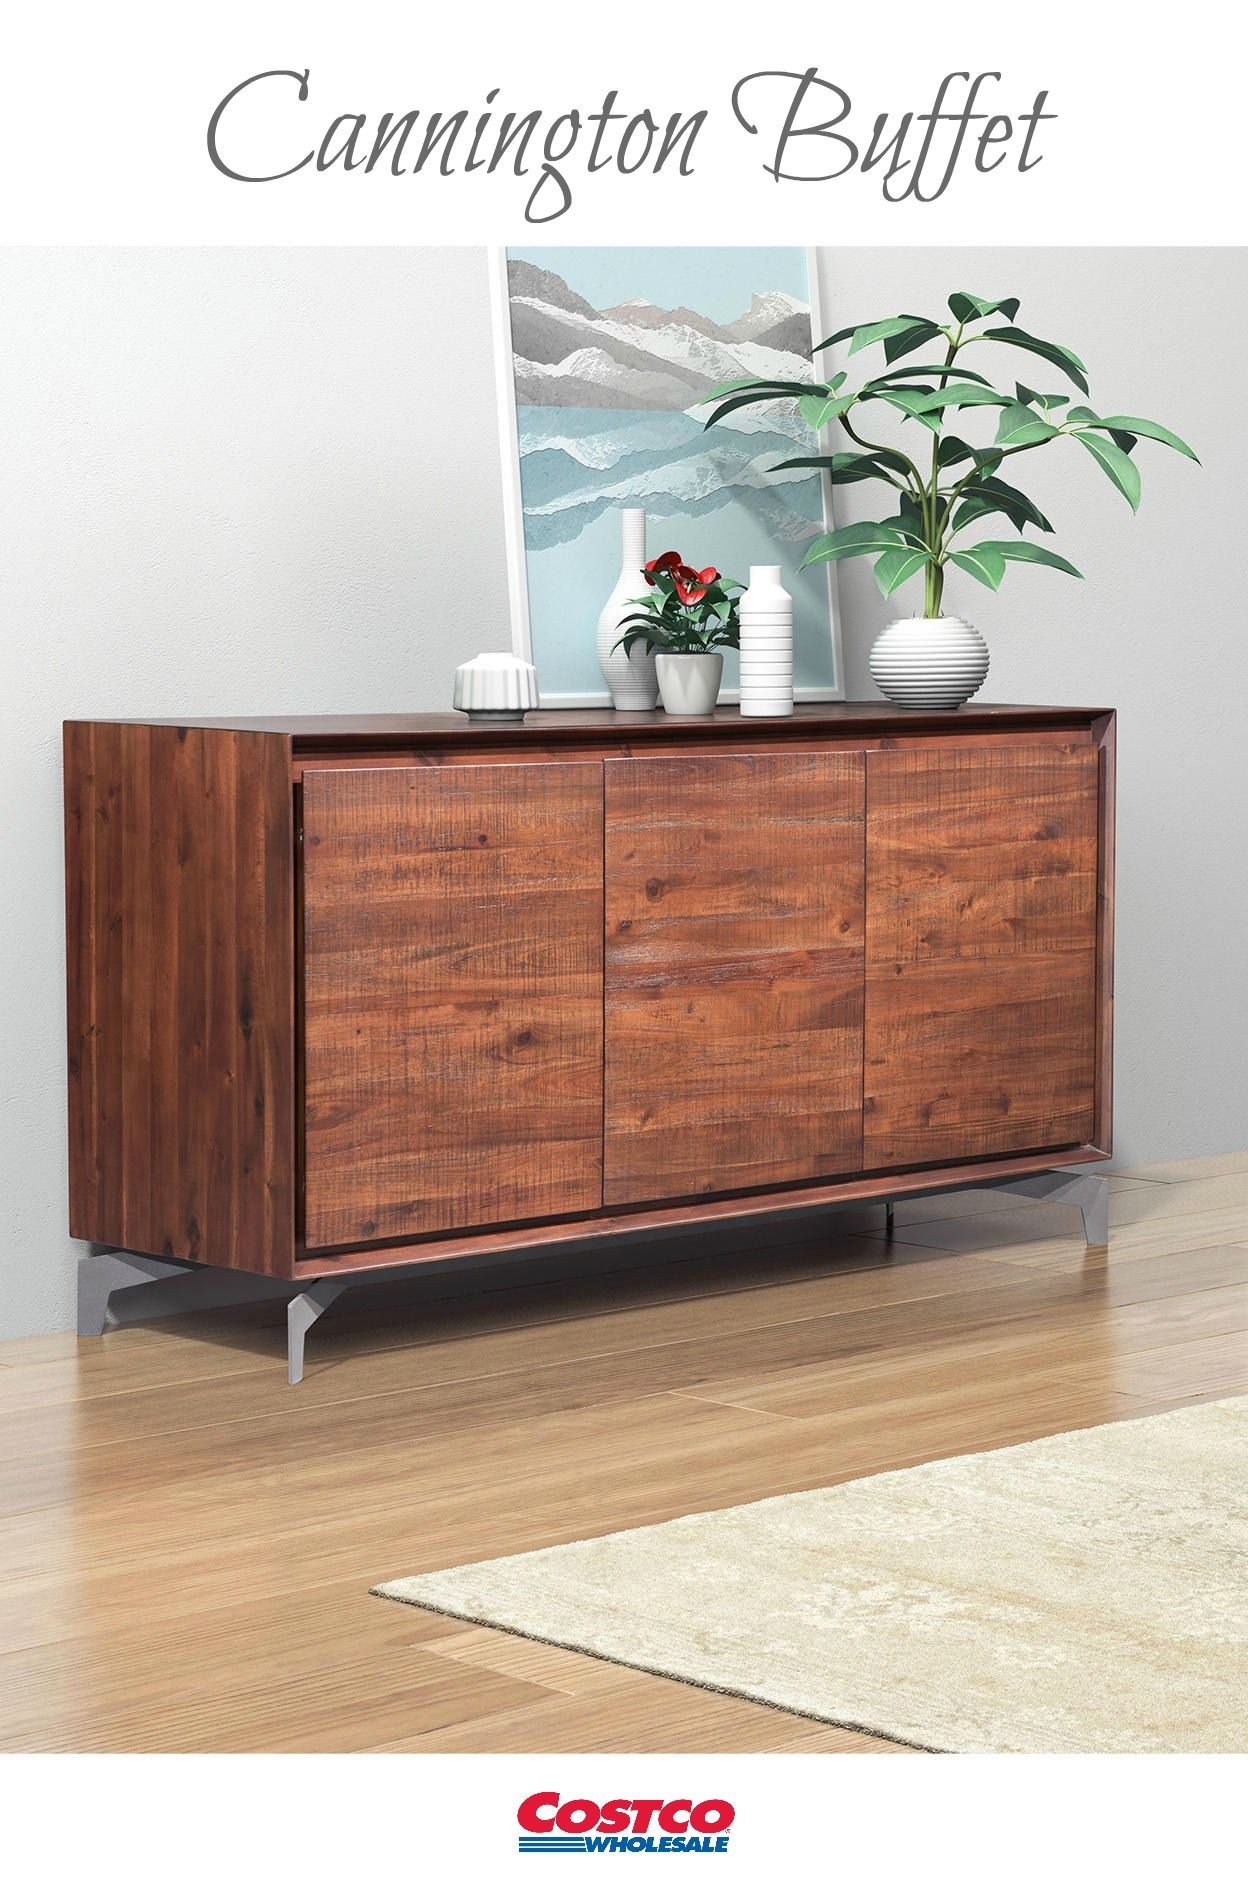 The Cannington Buffet with three doors features vast storage space